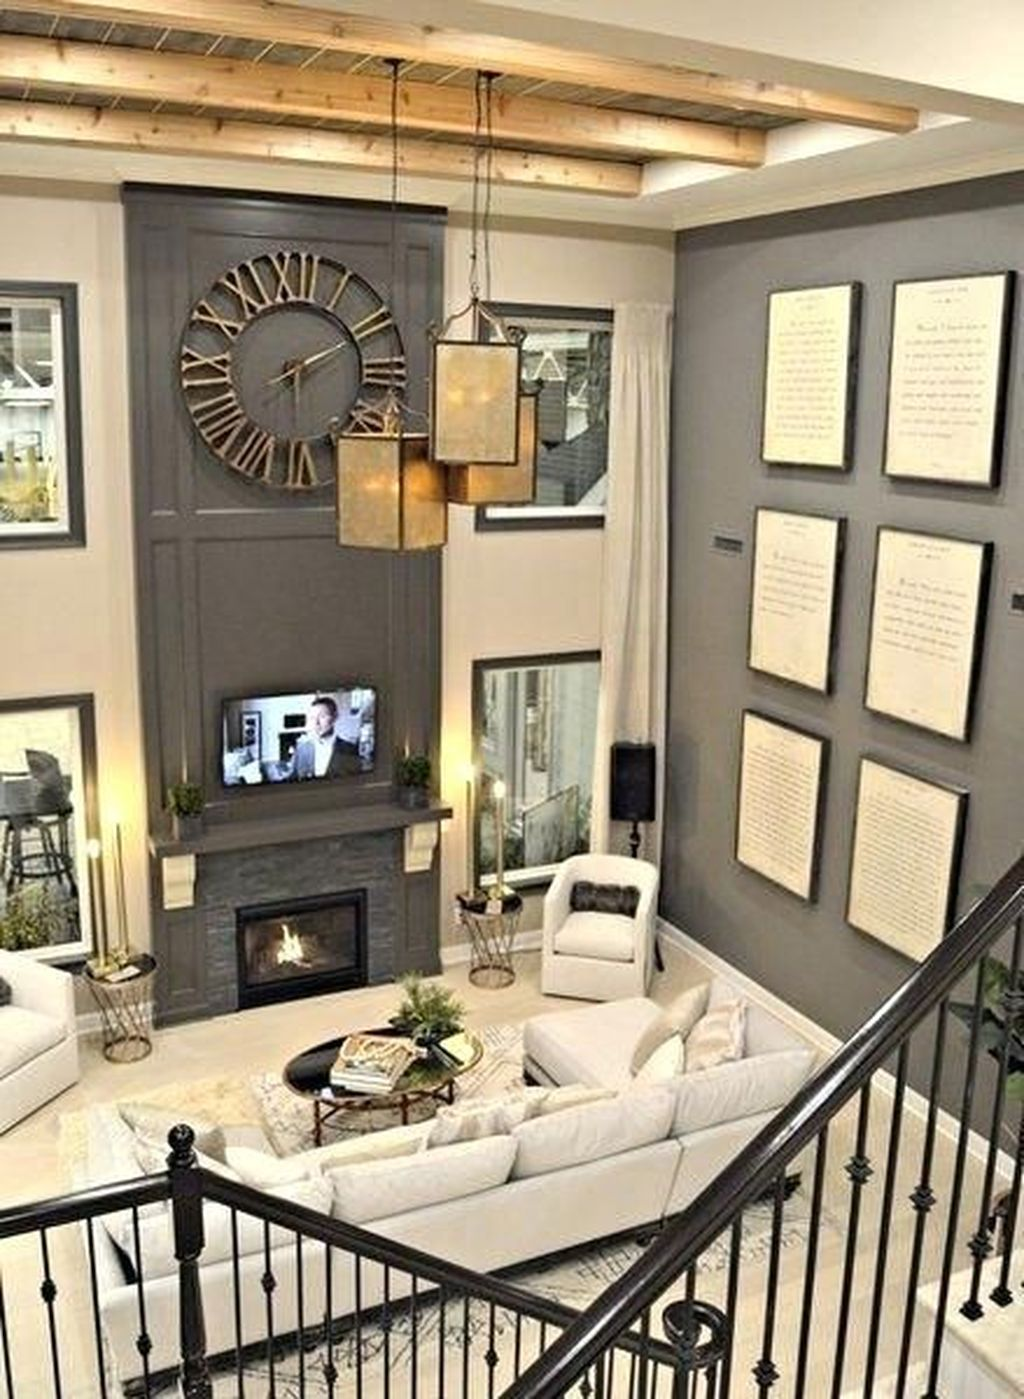 32+ Fireplace high ceiling ideas information